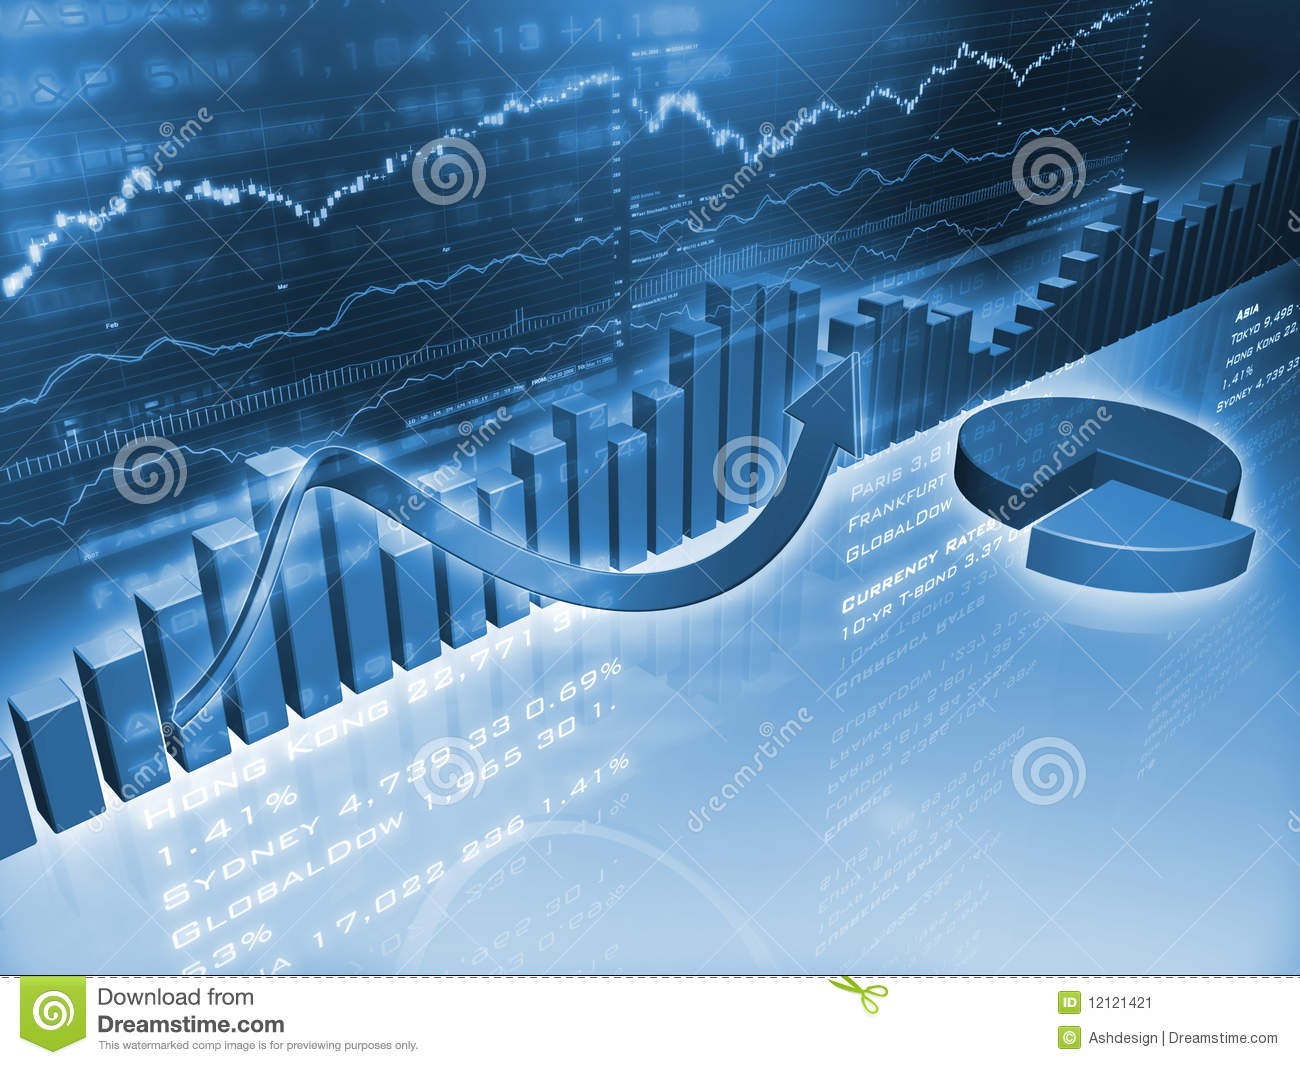 Economics Quotes Wallpapers Financial Graphs With Pie Chart Stock Image Image 12121421